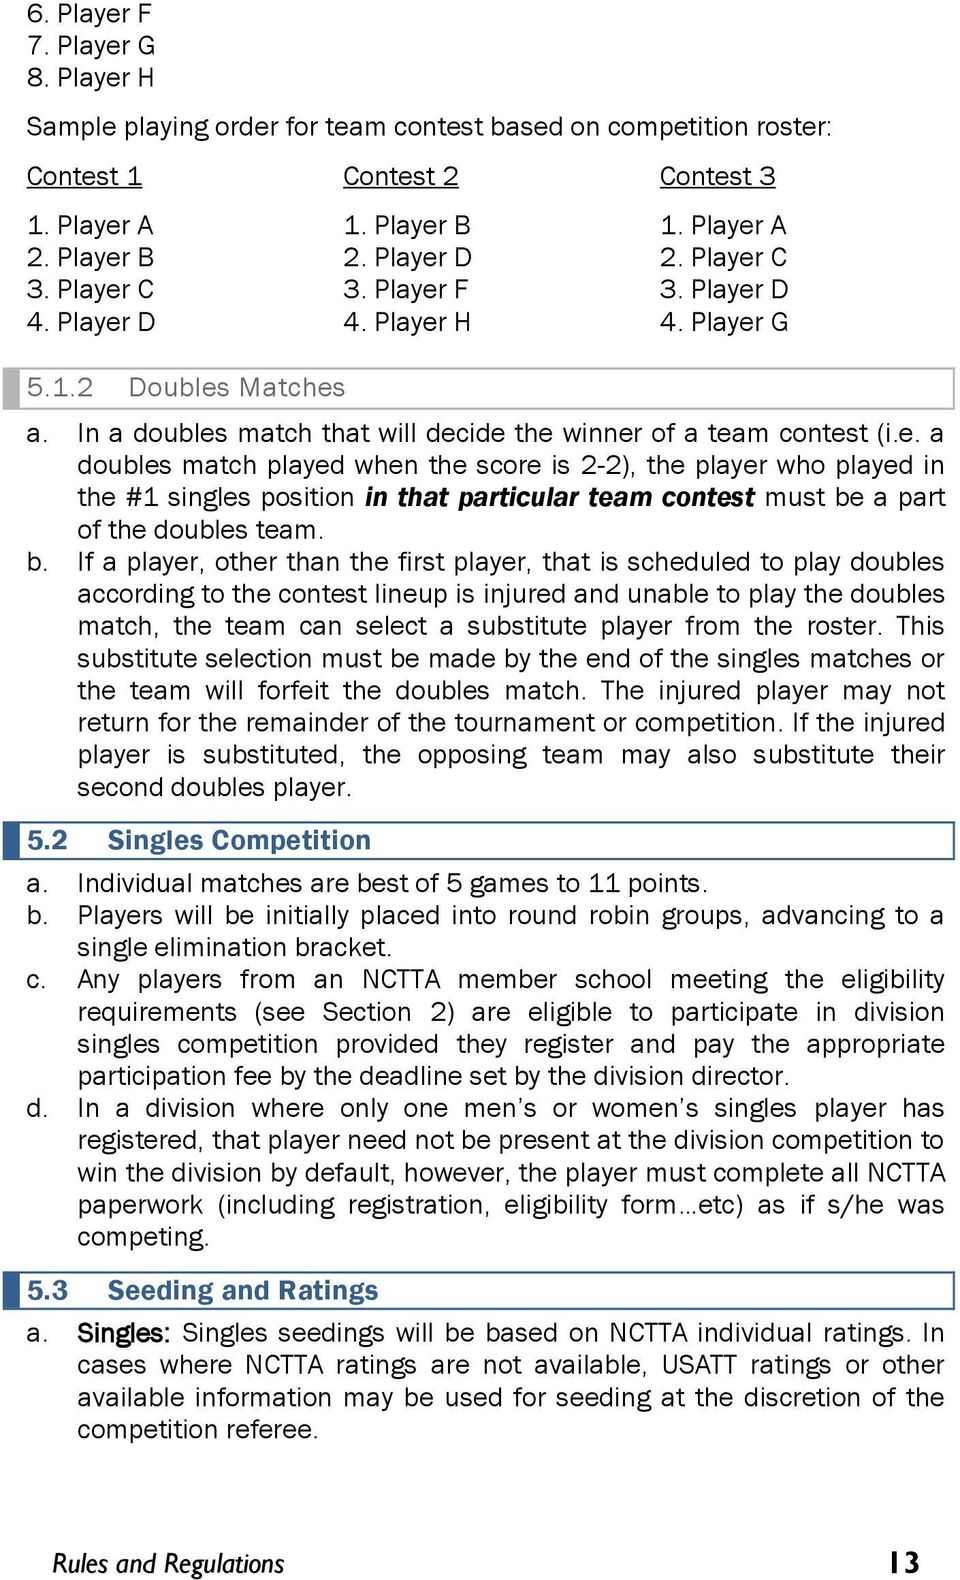 b. If a player, other than the first player, that is scheduled to play doubles according to the contest lineup is injured and unable to play the doubles match, the team can select a substitute player